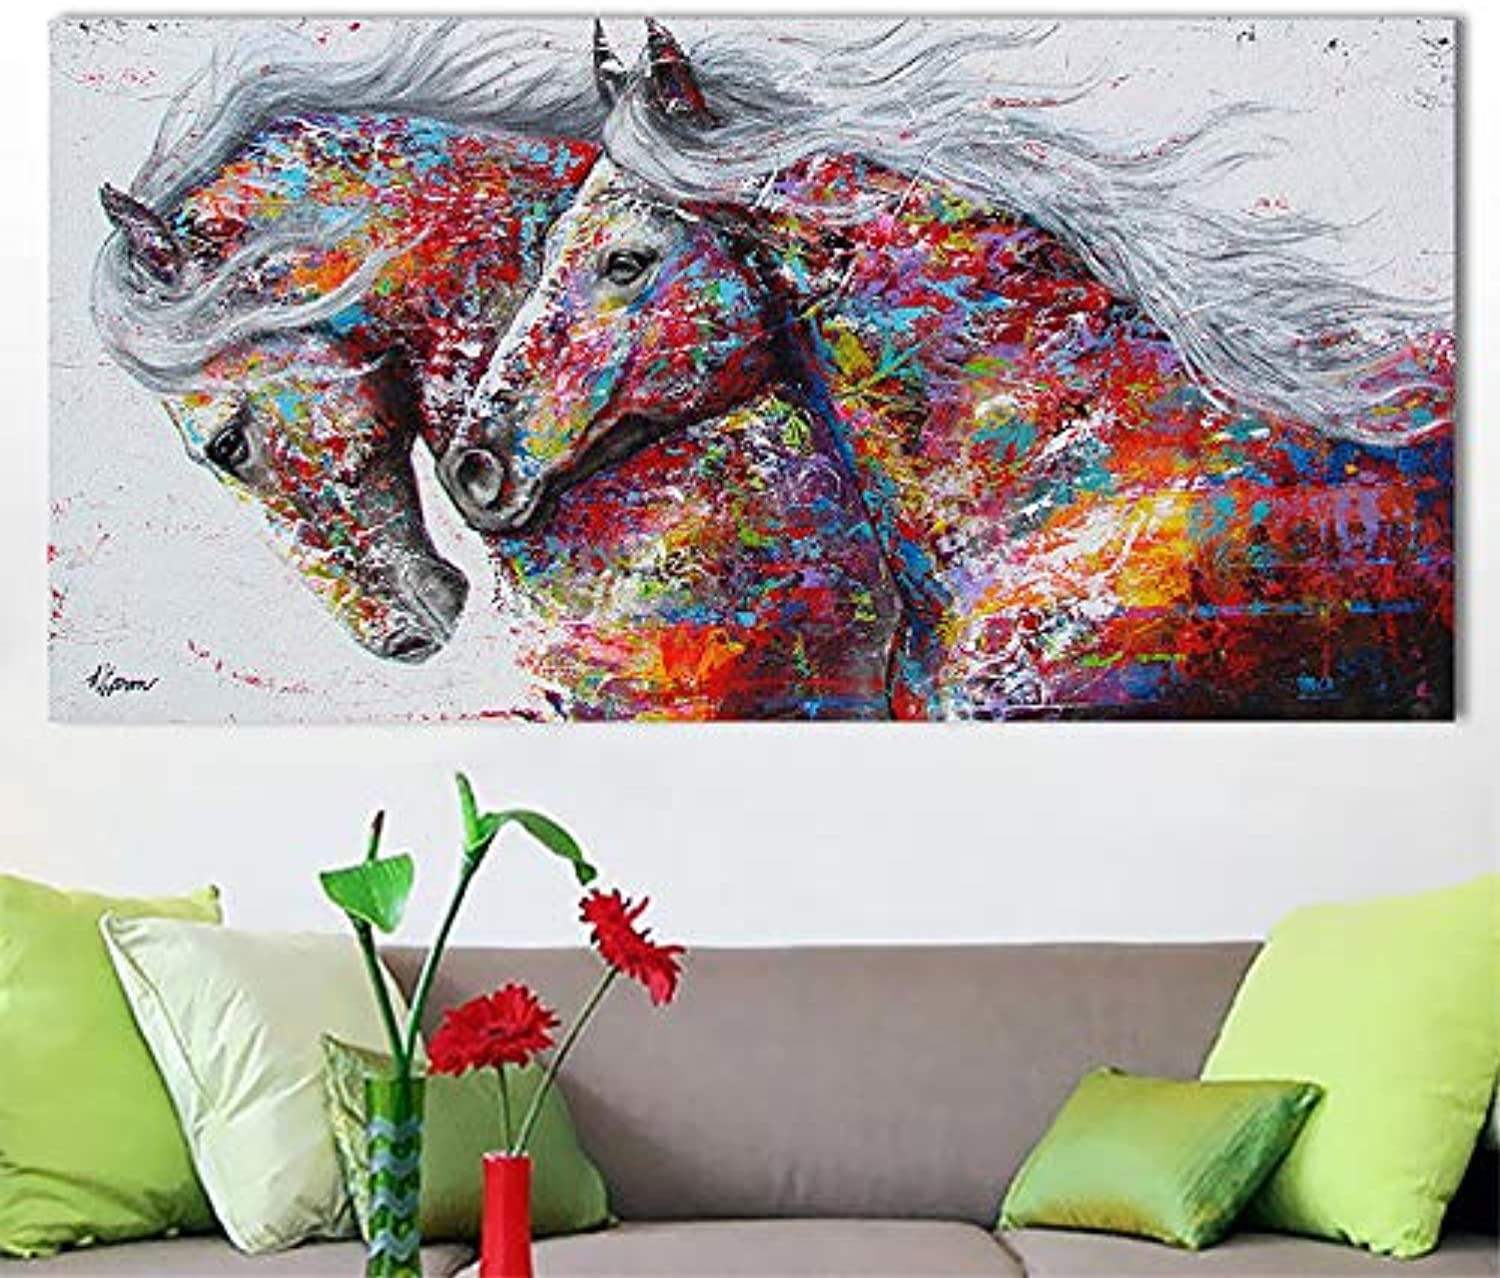 W15Y8 Graffiti Art Two Running Horse Animal Art Big Size Wall Pictures For Living Room Canvas Print Posters 70X140Cm No Frame